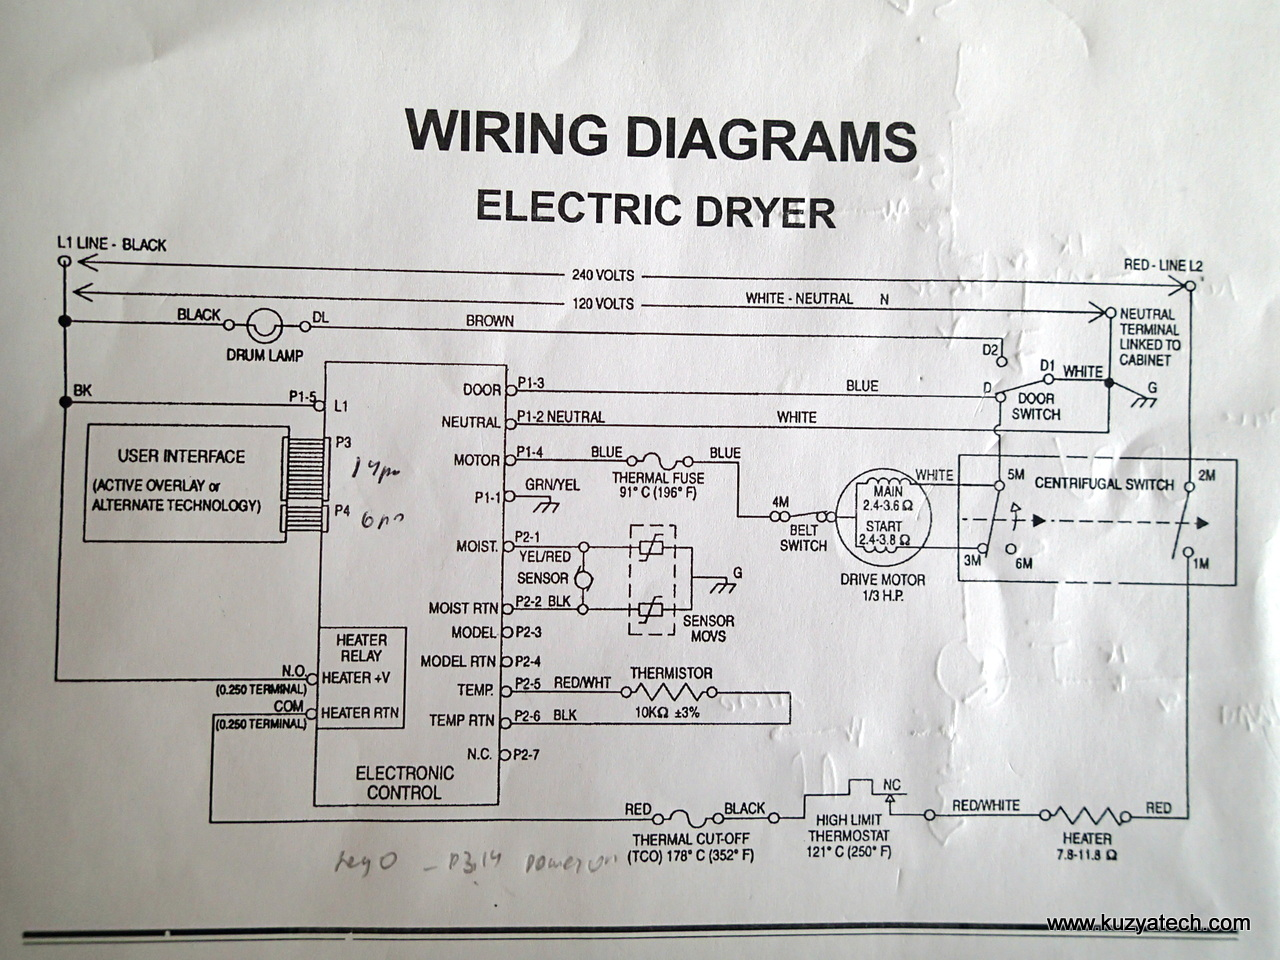 hight resolution of wiring diagram for whirlpool dryer wiring diagram files wiring diagram for whirlpool dryer ler4634eq2